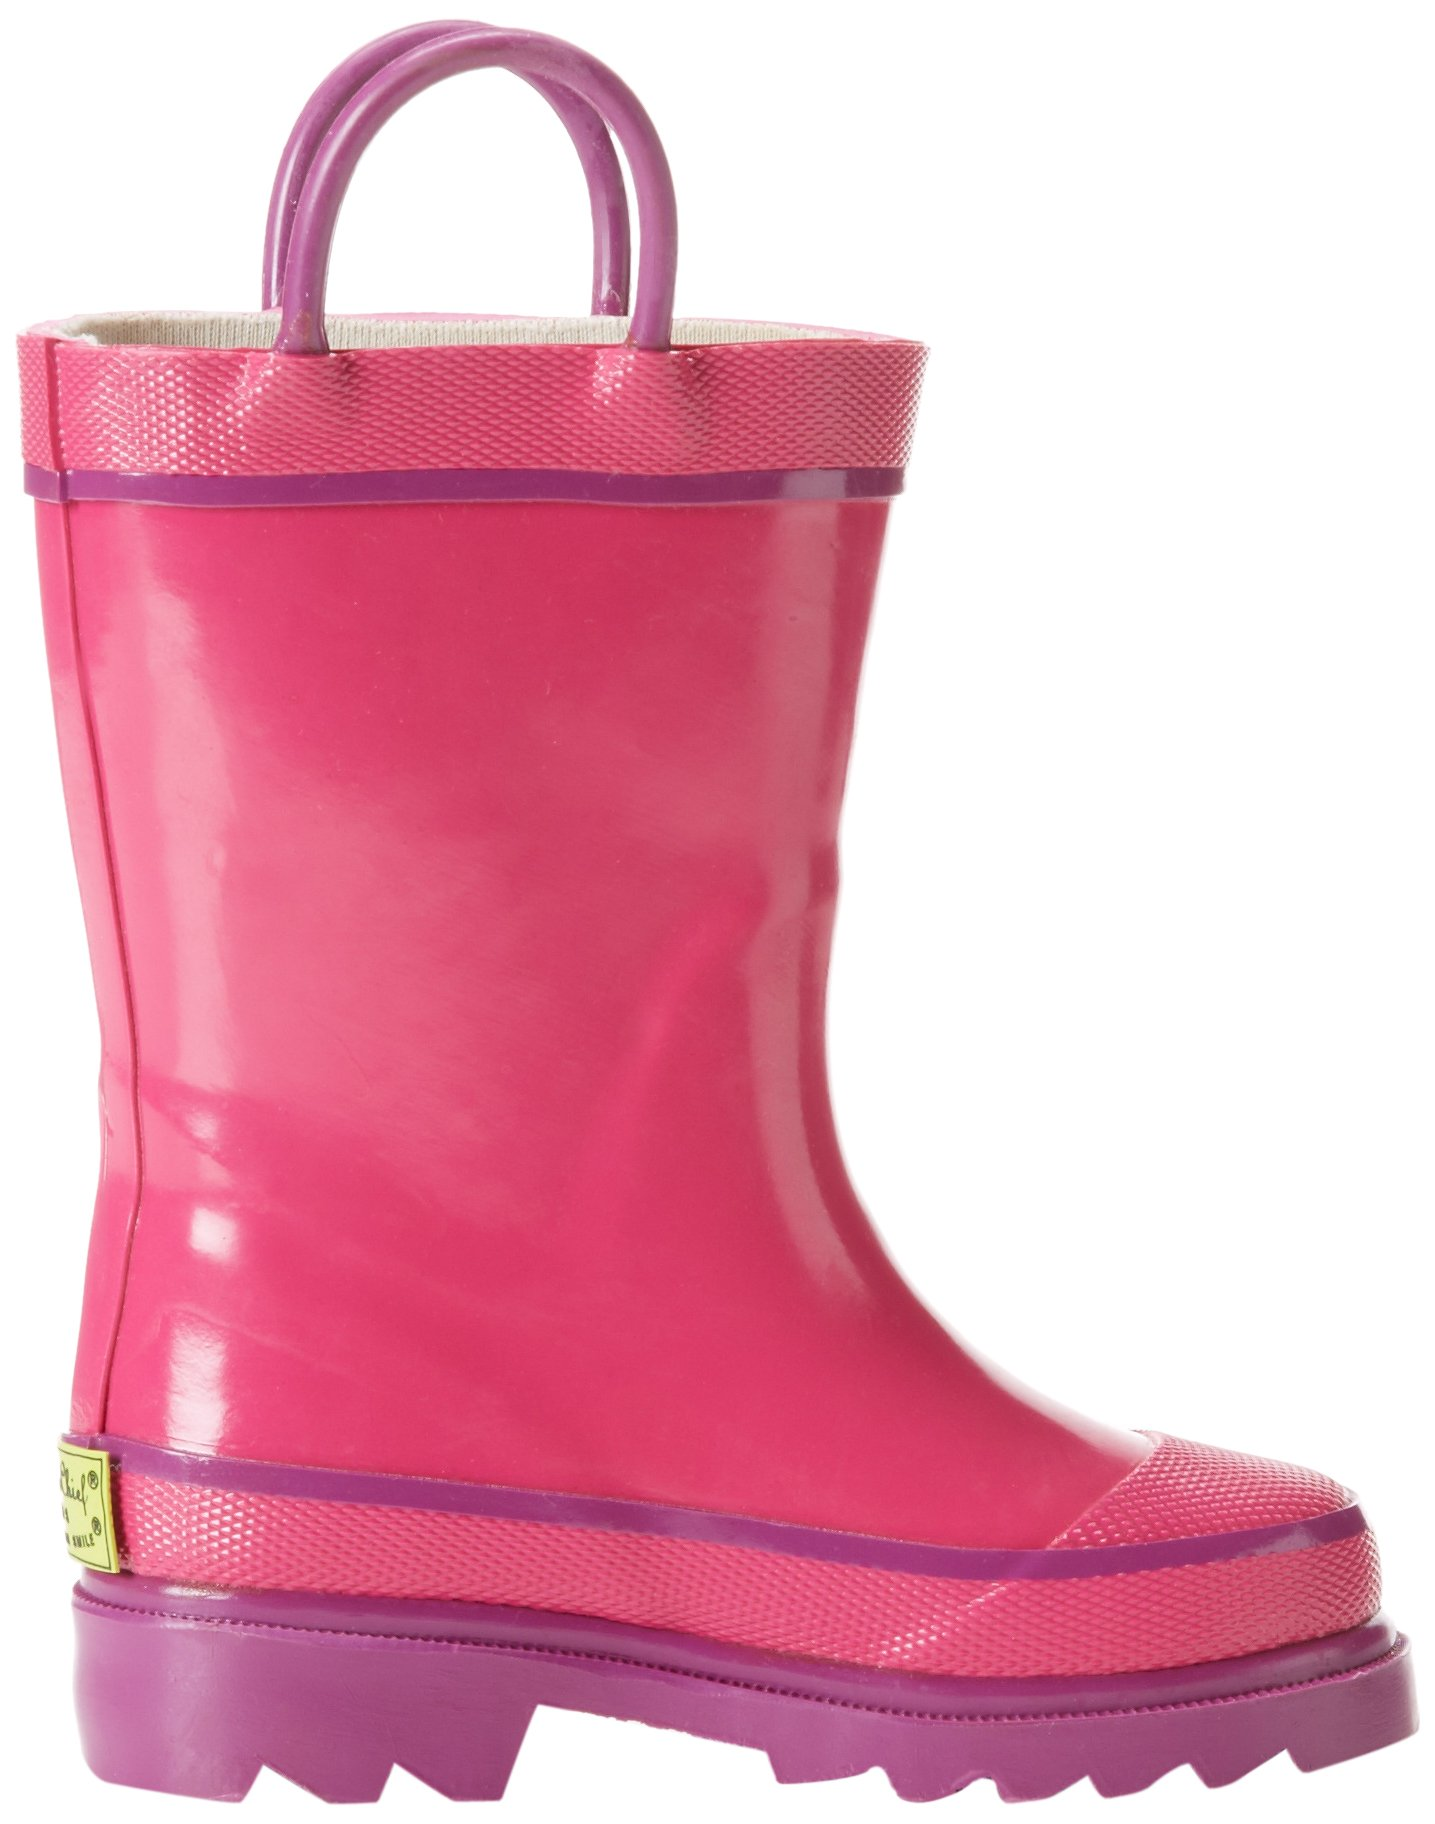 Western Chief Kids Waterproof Rubber Classic Rain Boot with Pull Handles, Pink, 7 M US Toddler by Western Chief (Image #6)